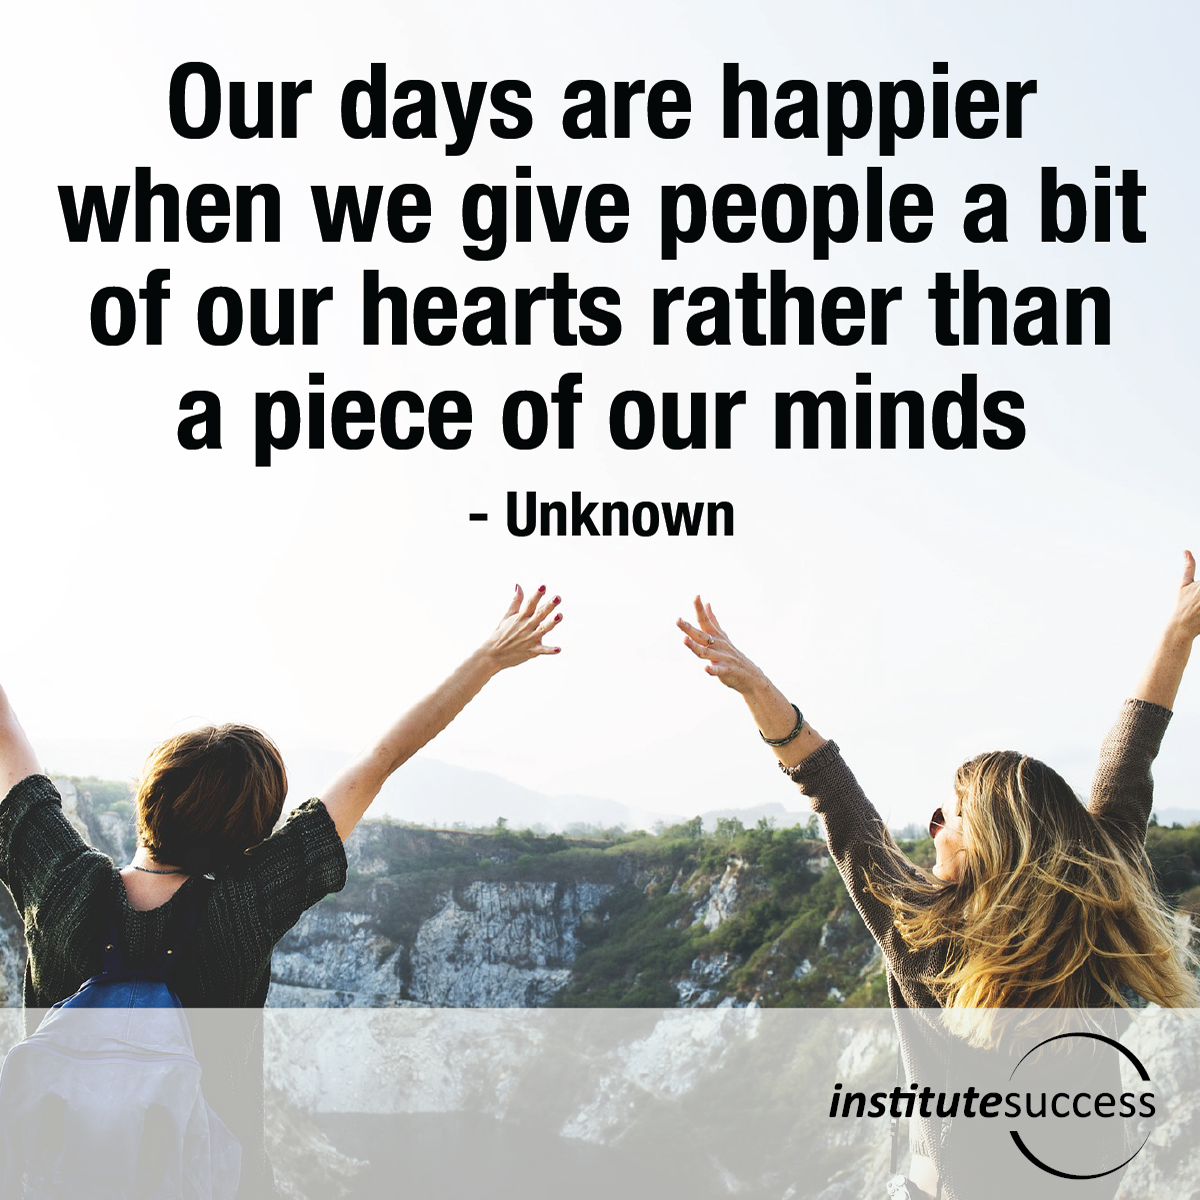 Our days are happier when we give people a bit of our hearts rather than a piece of our minds – Unknown